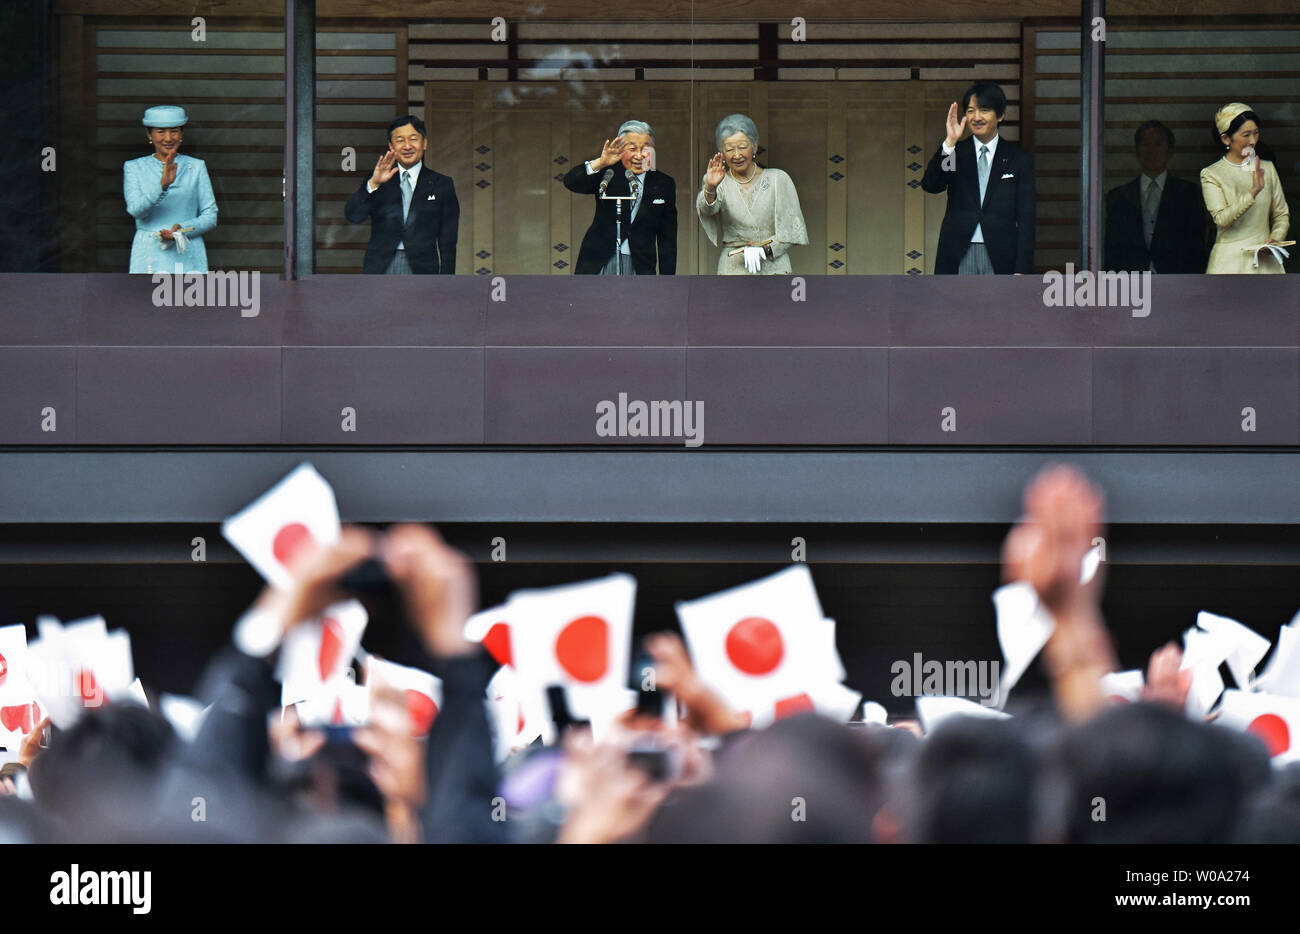 Japan's Emperor Akihito(L3) waves to well-wishers with Empress Michiko(R3), Crown prince Naruhito(L2), Crown princess Masako(L), Prince Akishino (R2), and his wife Princess Kiko(R) during his Majesty's 83rd birthday greeting at the East Plaza, Imperial Palace in Tokyo, Japan, on December 23, 2016.     Photo by Keizo Mori/UPI - Stock Image